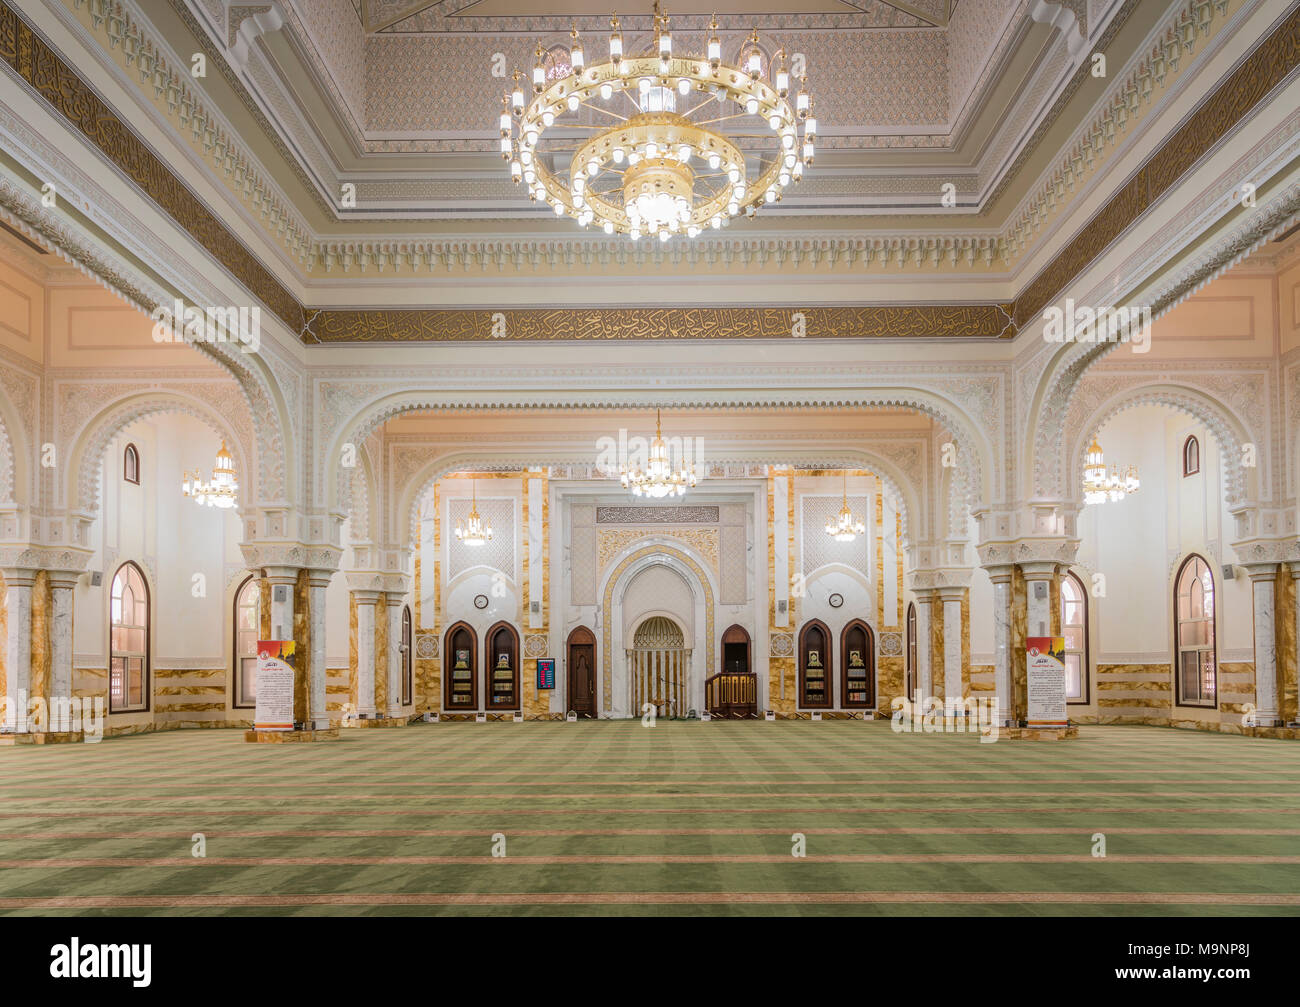 The interior of the Al Manara Mosque in Dubai, UAE, Middle East. - Stock Image